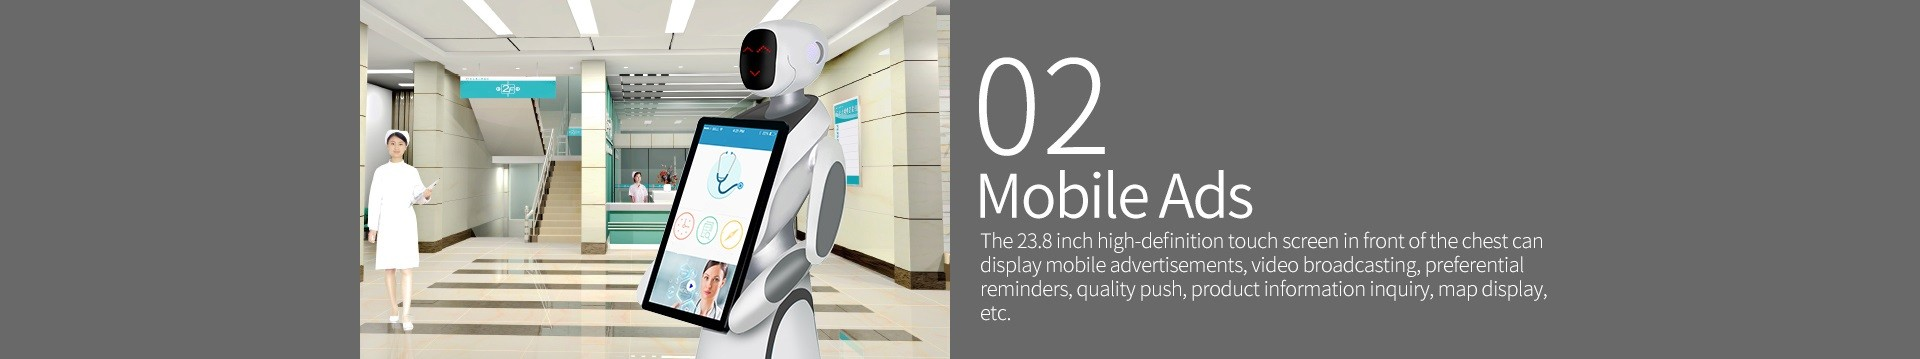 Humanoid Intelligent Commercial Service Robot SIFROBOT-5.3 mobile ads